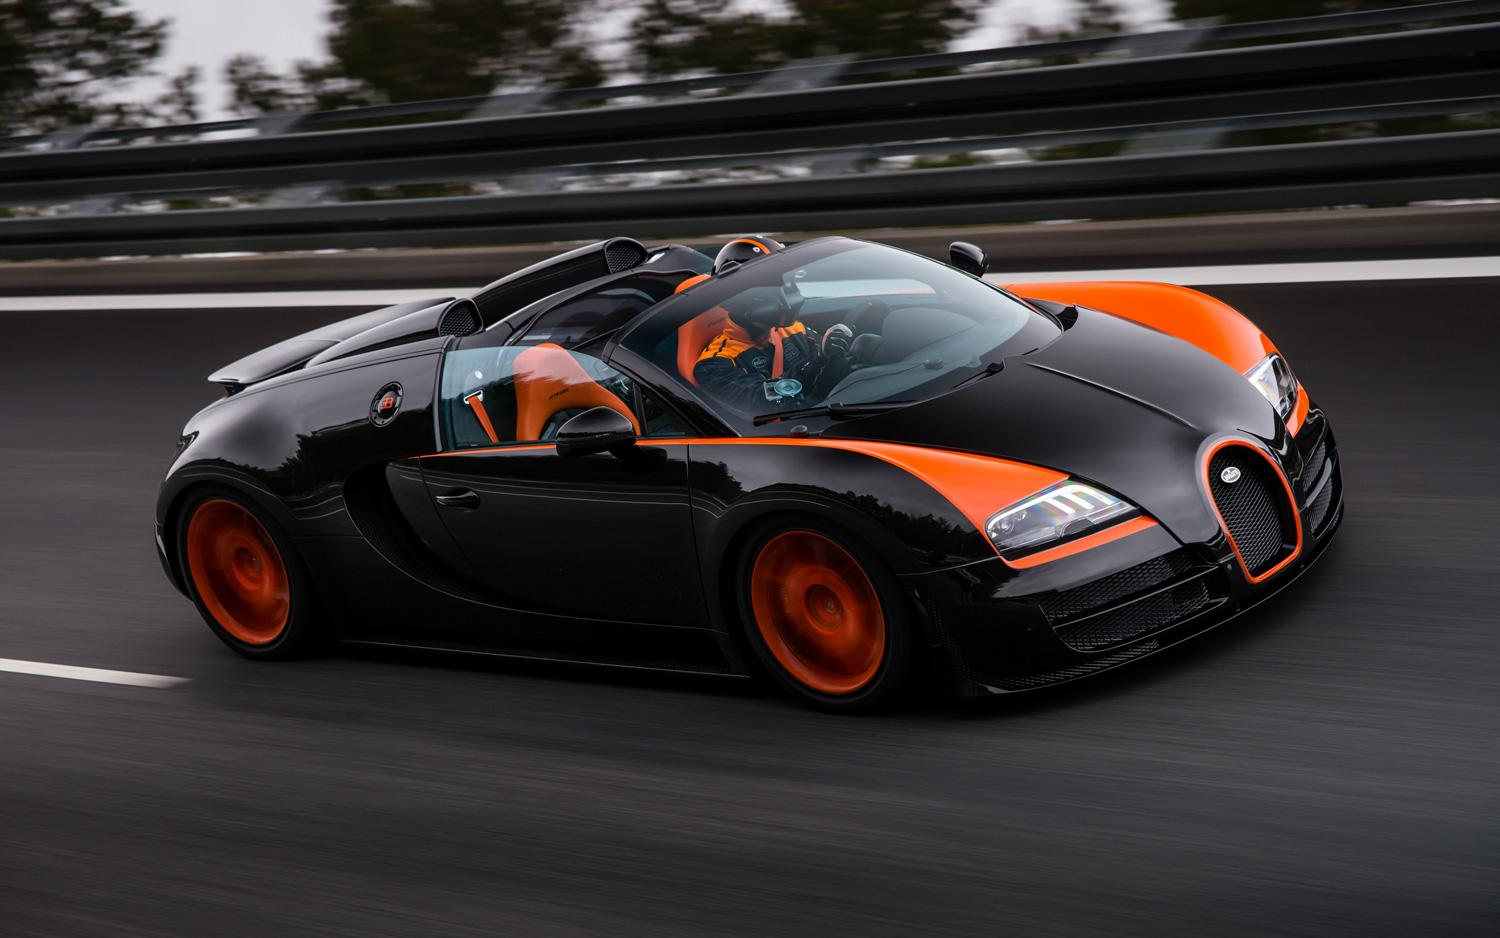 Bugatti-Veyron-16.4-Grand-Sport-Vitesse-right-front-1